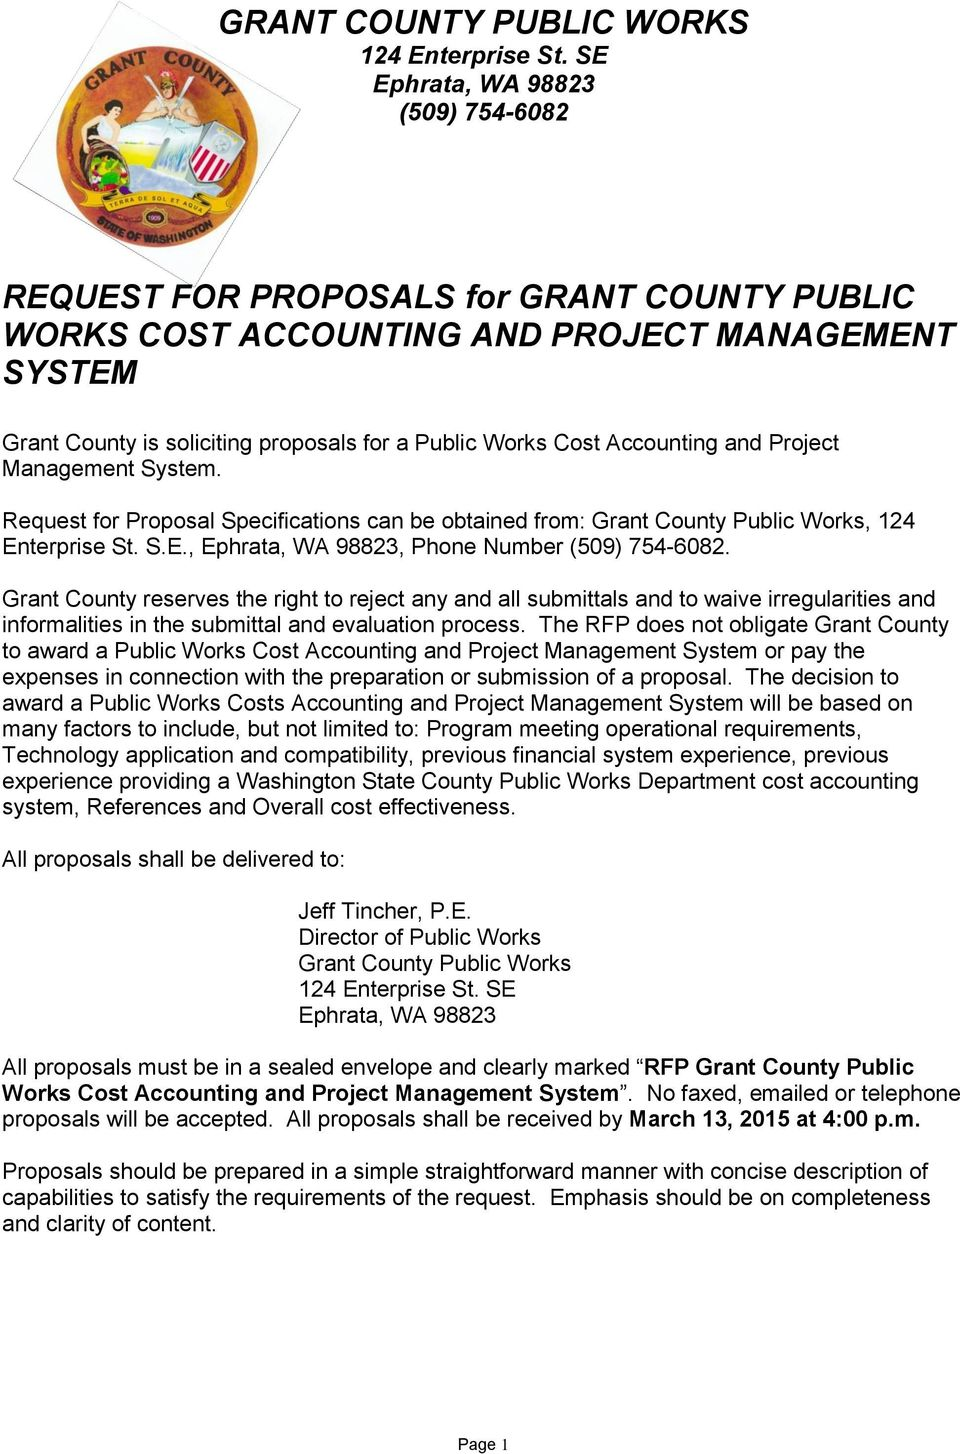 Accounting and Project Management System. Request for Proposal Specifications can be obtained from: Grant County Public Works, 124 Enterprise St. S.E., Ephrata, WA 98823, Phone Number (509) 754-6082.